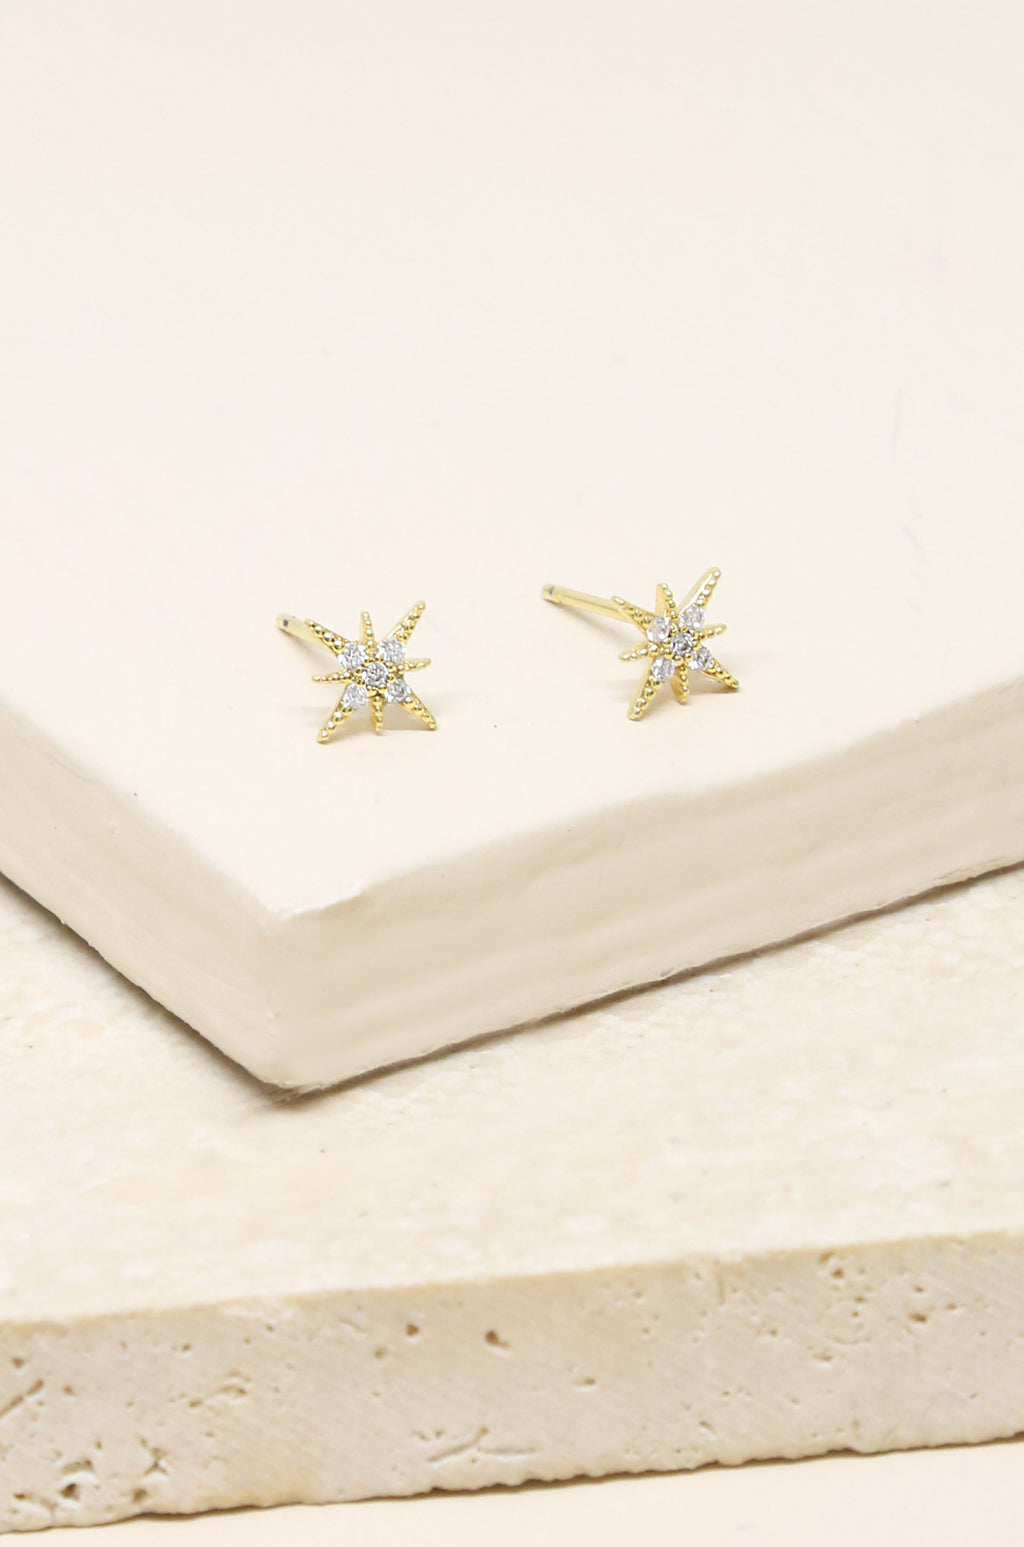 Crystal 'Interstellar' Earring Studs